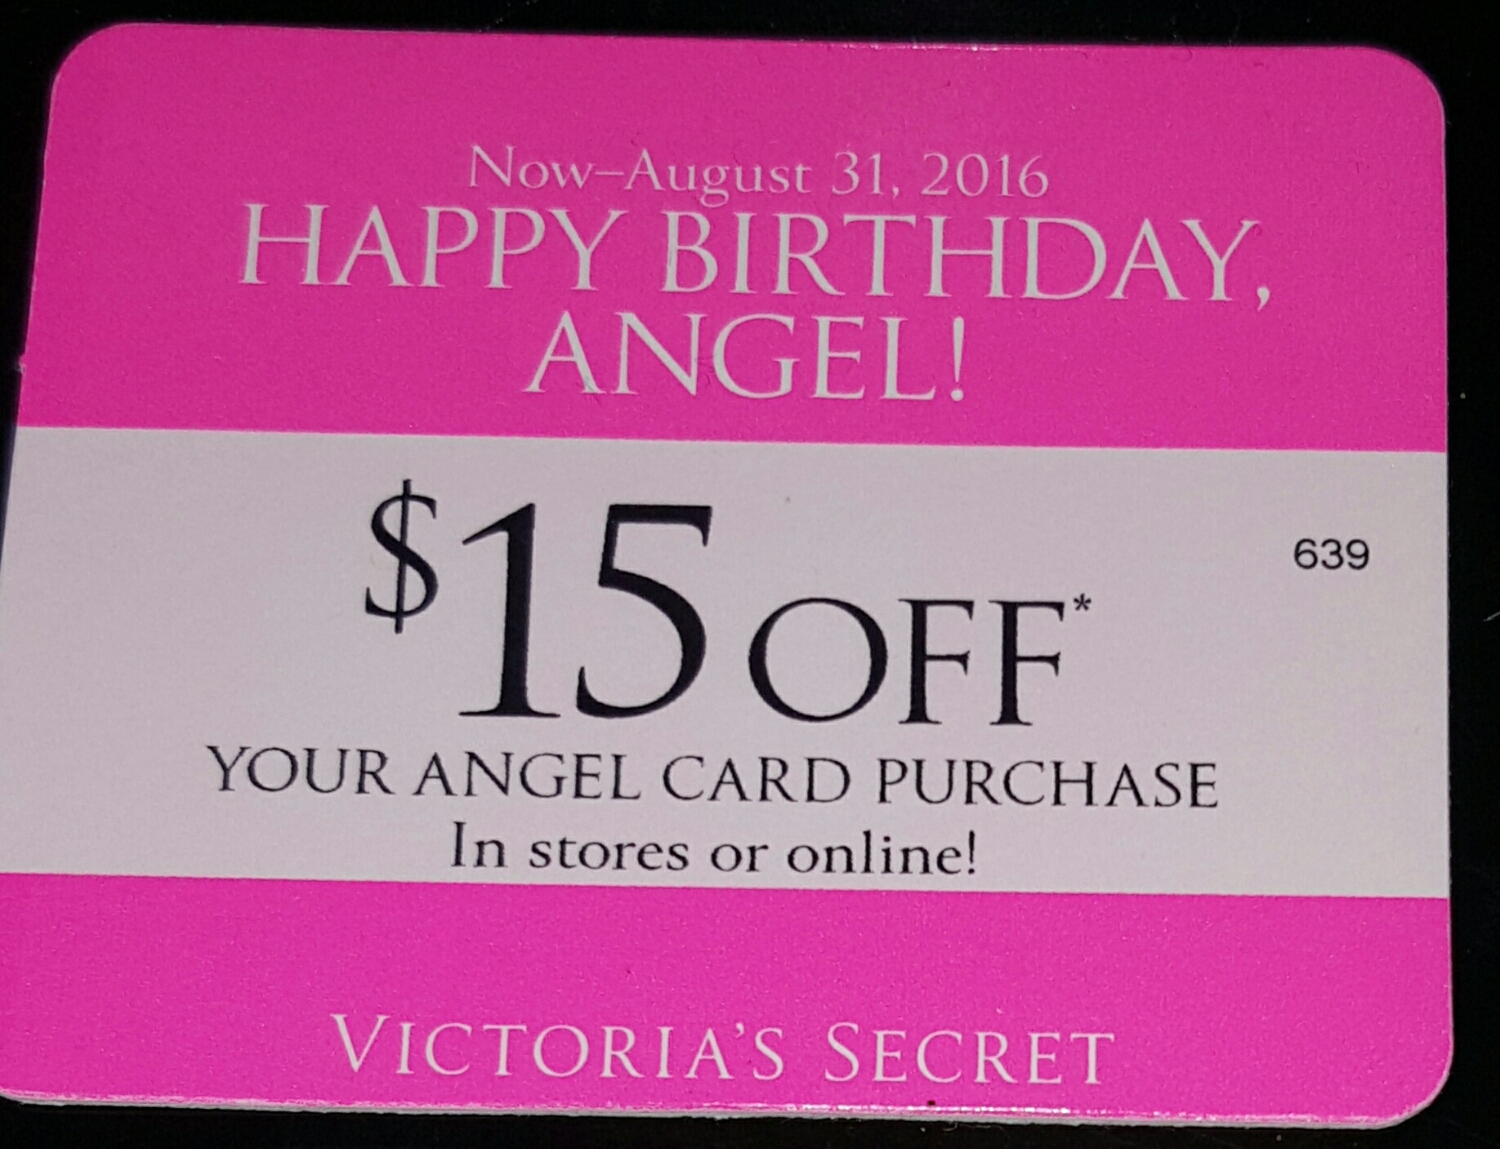 This Year I Decided To Use The Coupon On Their Beauty Items Lipgloss And Makeup Remover Wipes Are Regularly Priced 10 Each Store Was Running A